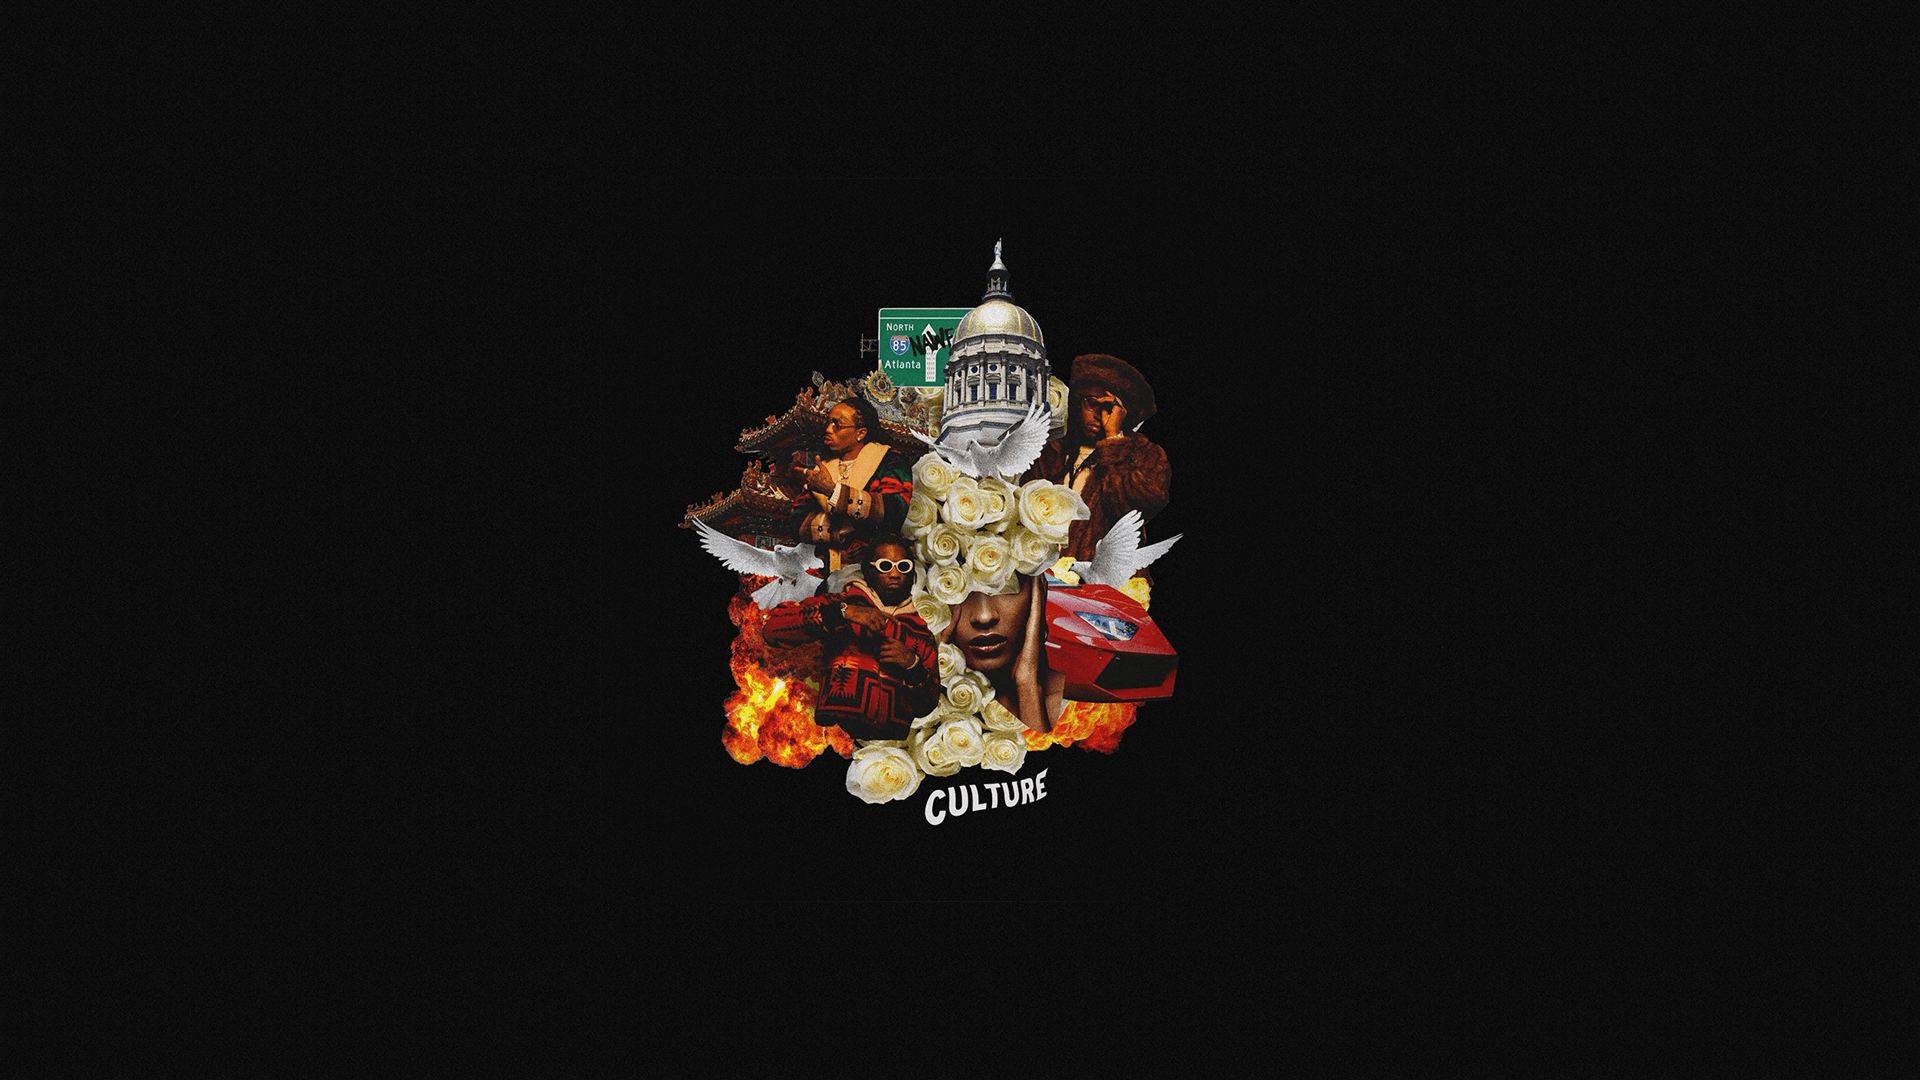 Migos Culture Album Wallpapers   Top Migos Culture Album 1920x1080